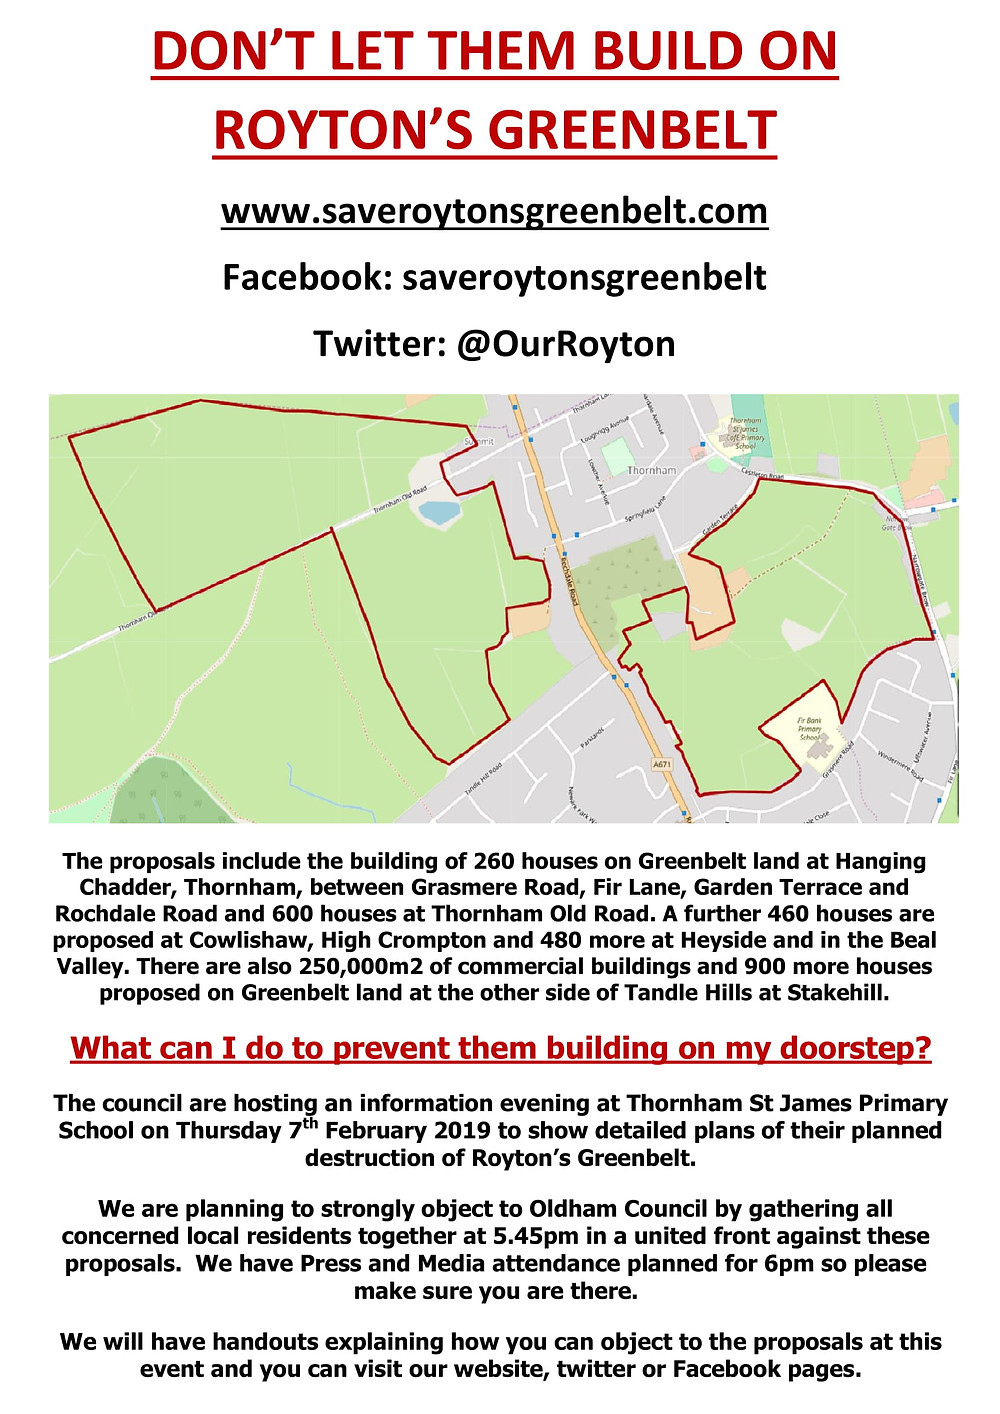 Don't let them build on Royton's greenbelt flyer